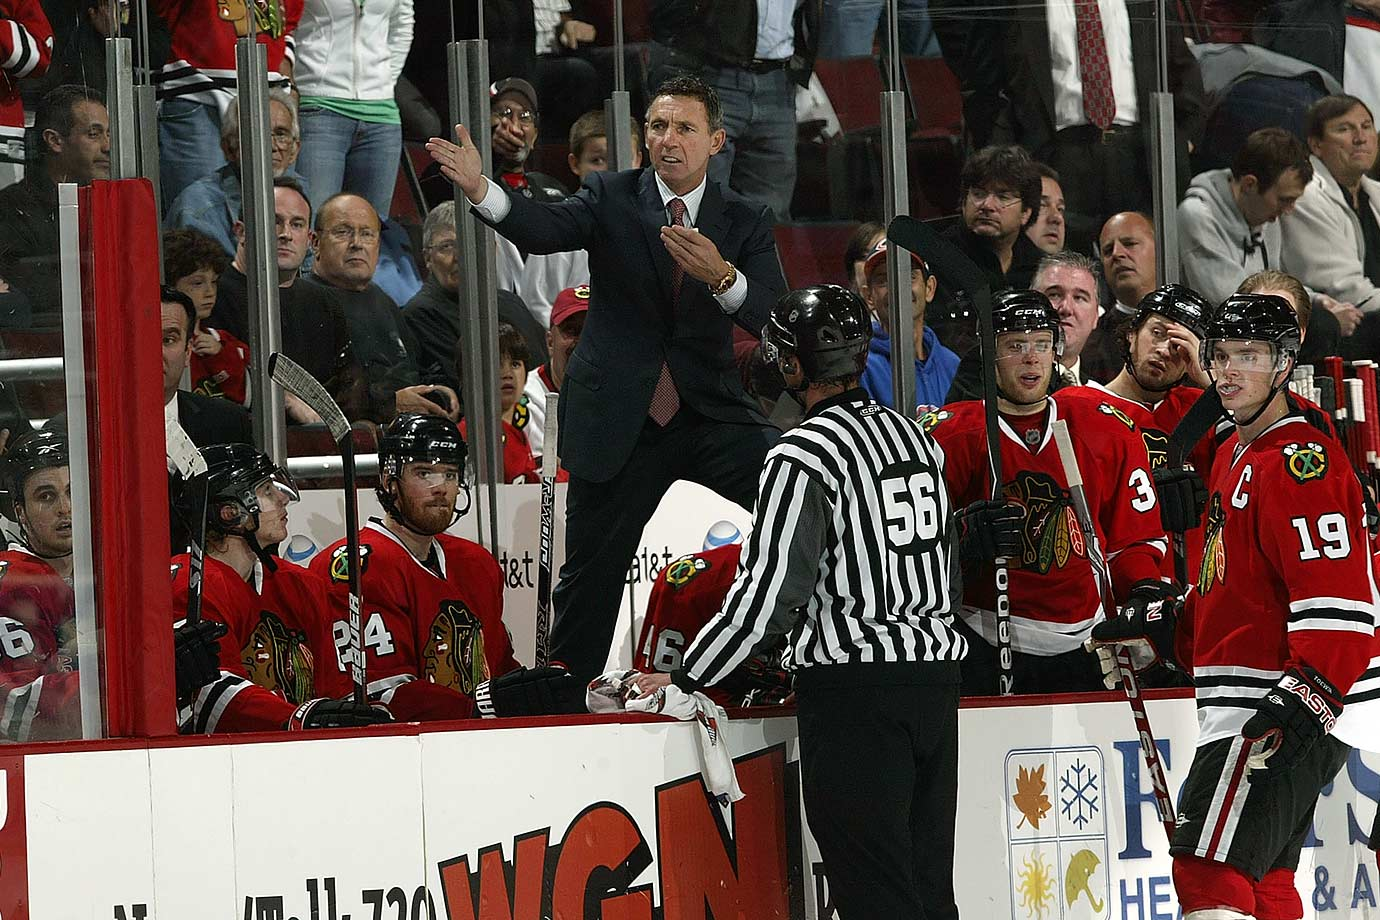 "Another coach doomed by a failure to make the playoffs followed by a listless camp, the Hawks Hall of Famer was given the heave-ho after an 0-2-1 start to what would have been his third season behind the bench. ""It was a flat camp and we got out of the gate flat,"" FM Dale Tallon said. ""We felt we needed to send a message and invigorate this team."" Savard's replacement: Joel Quenneville, who has led Chicago to three Stanley Cups."